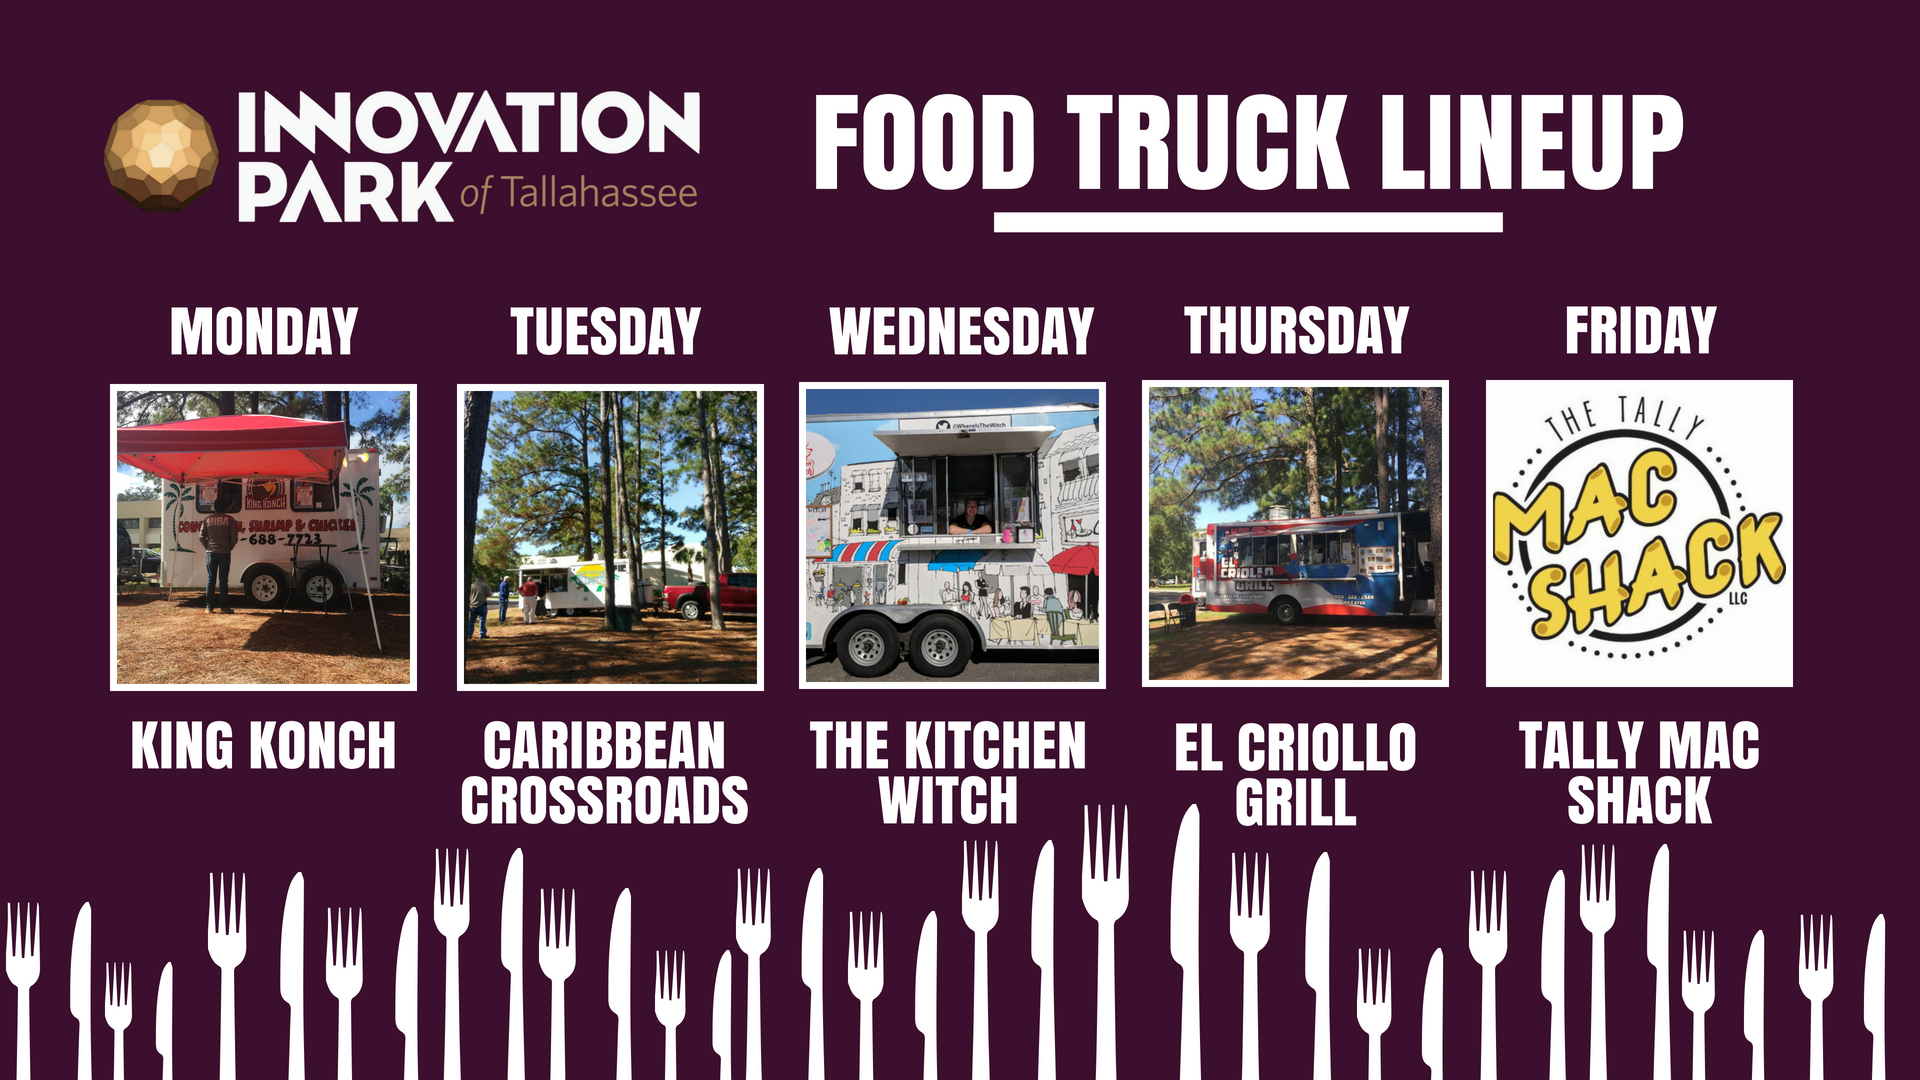 Innovation Park Foodtruck Lineup